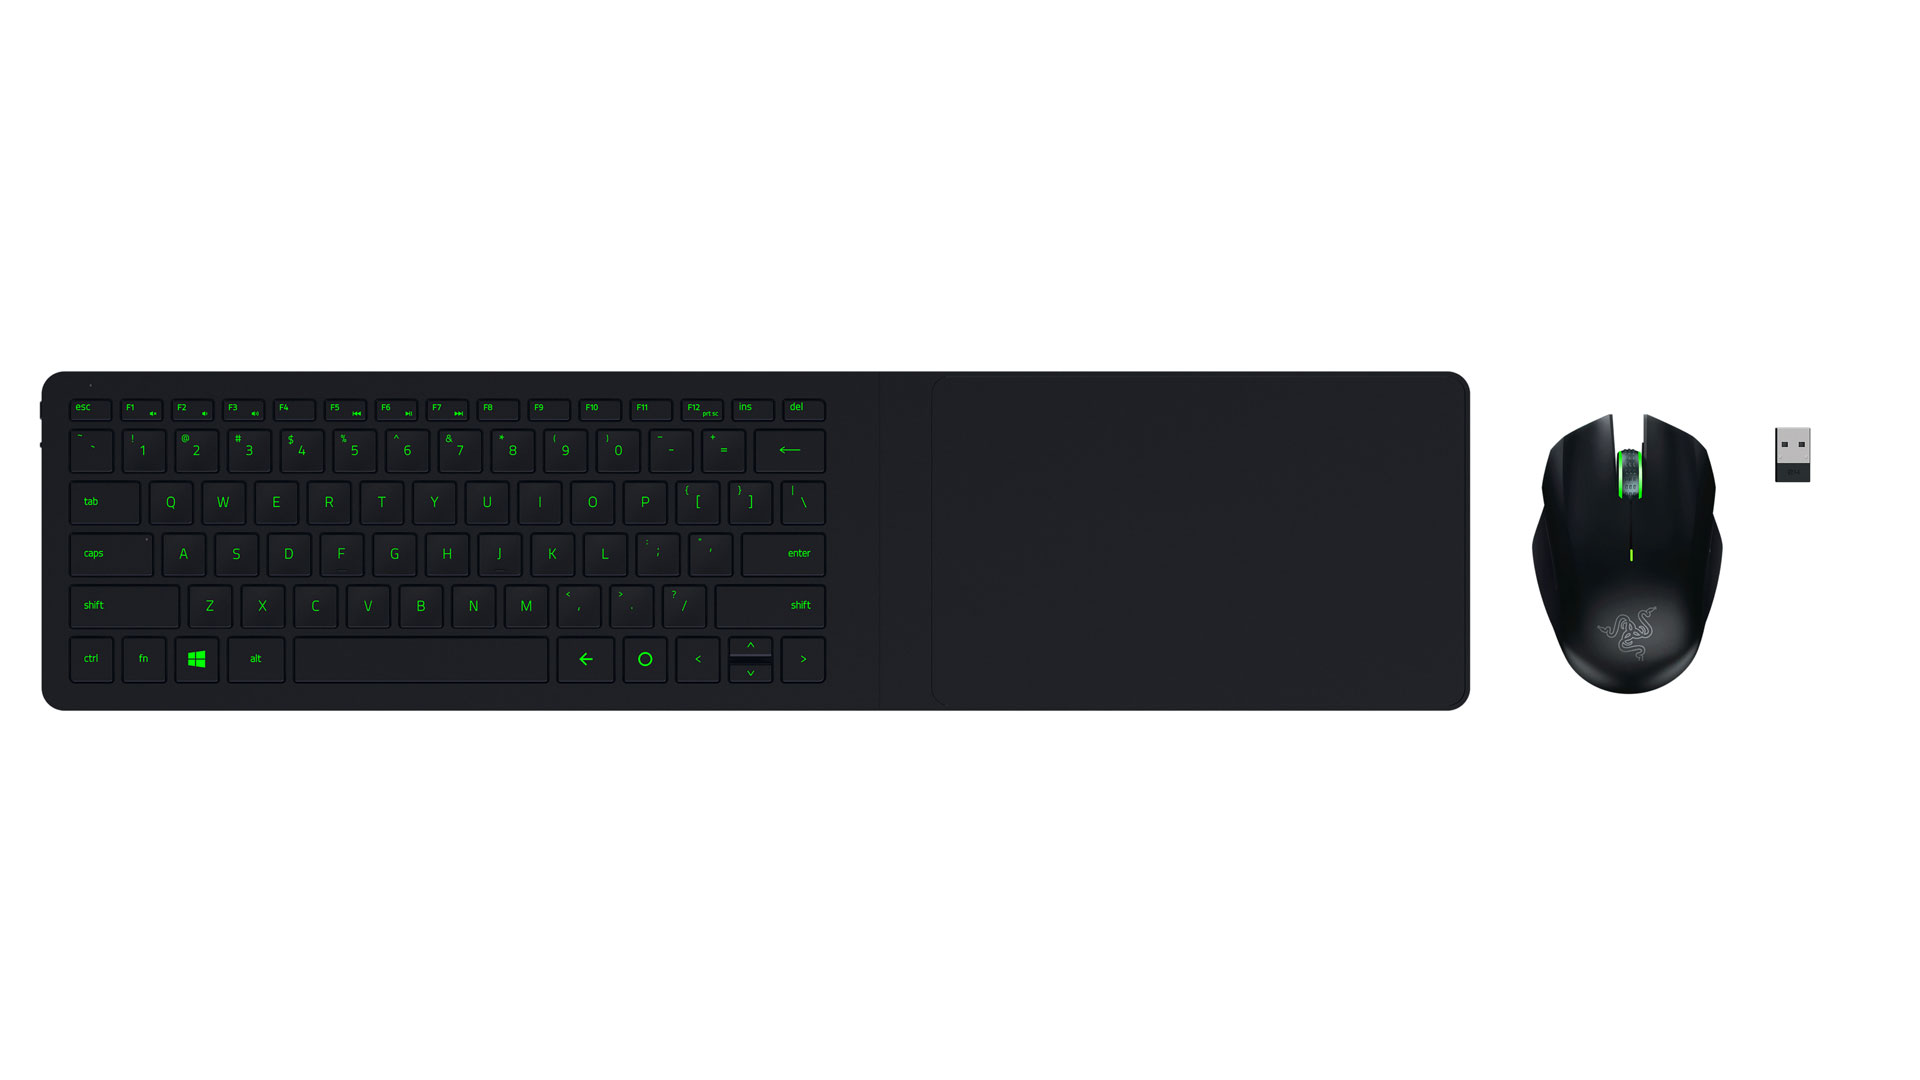 Razer Turret Living Room PC Mouse And Keyboard Lapboard Announced